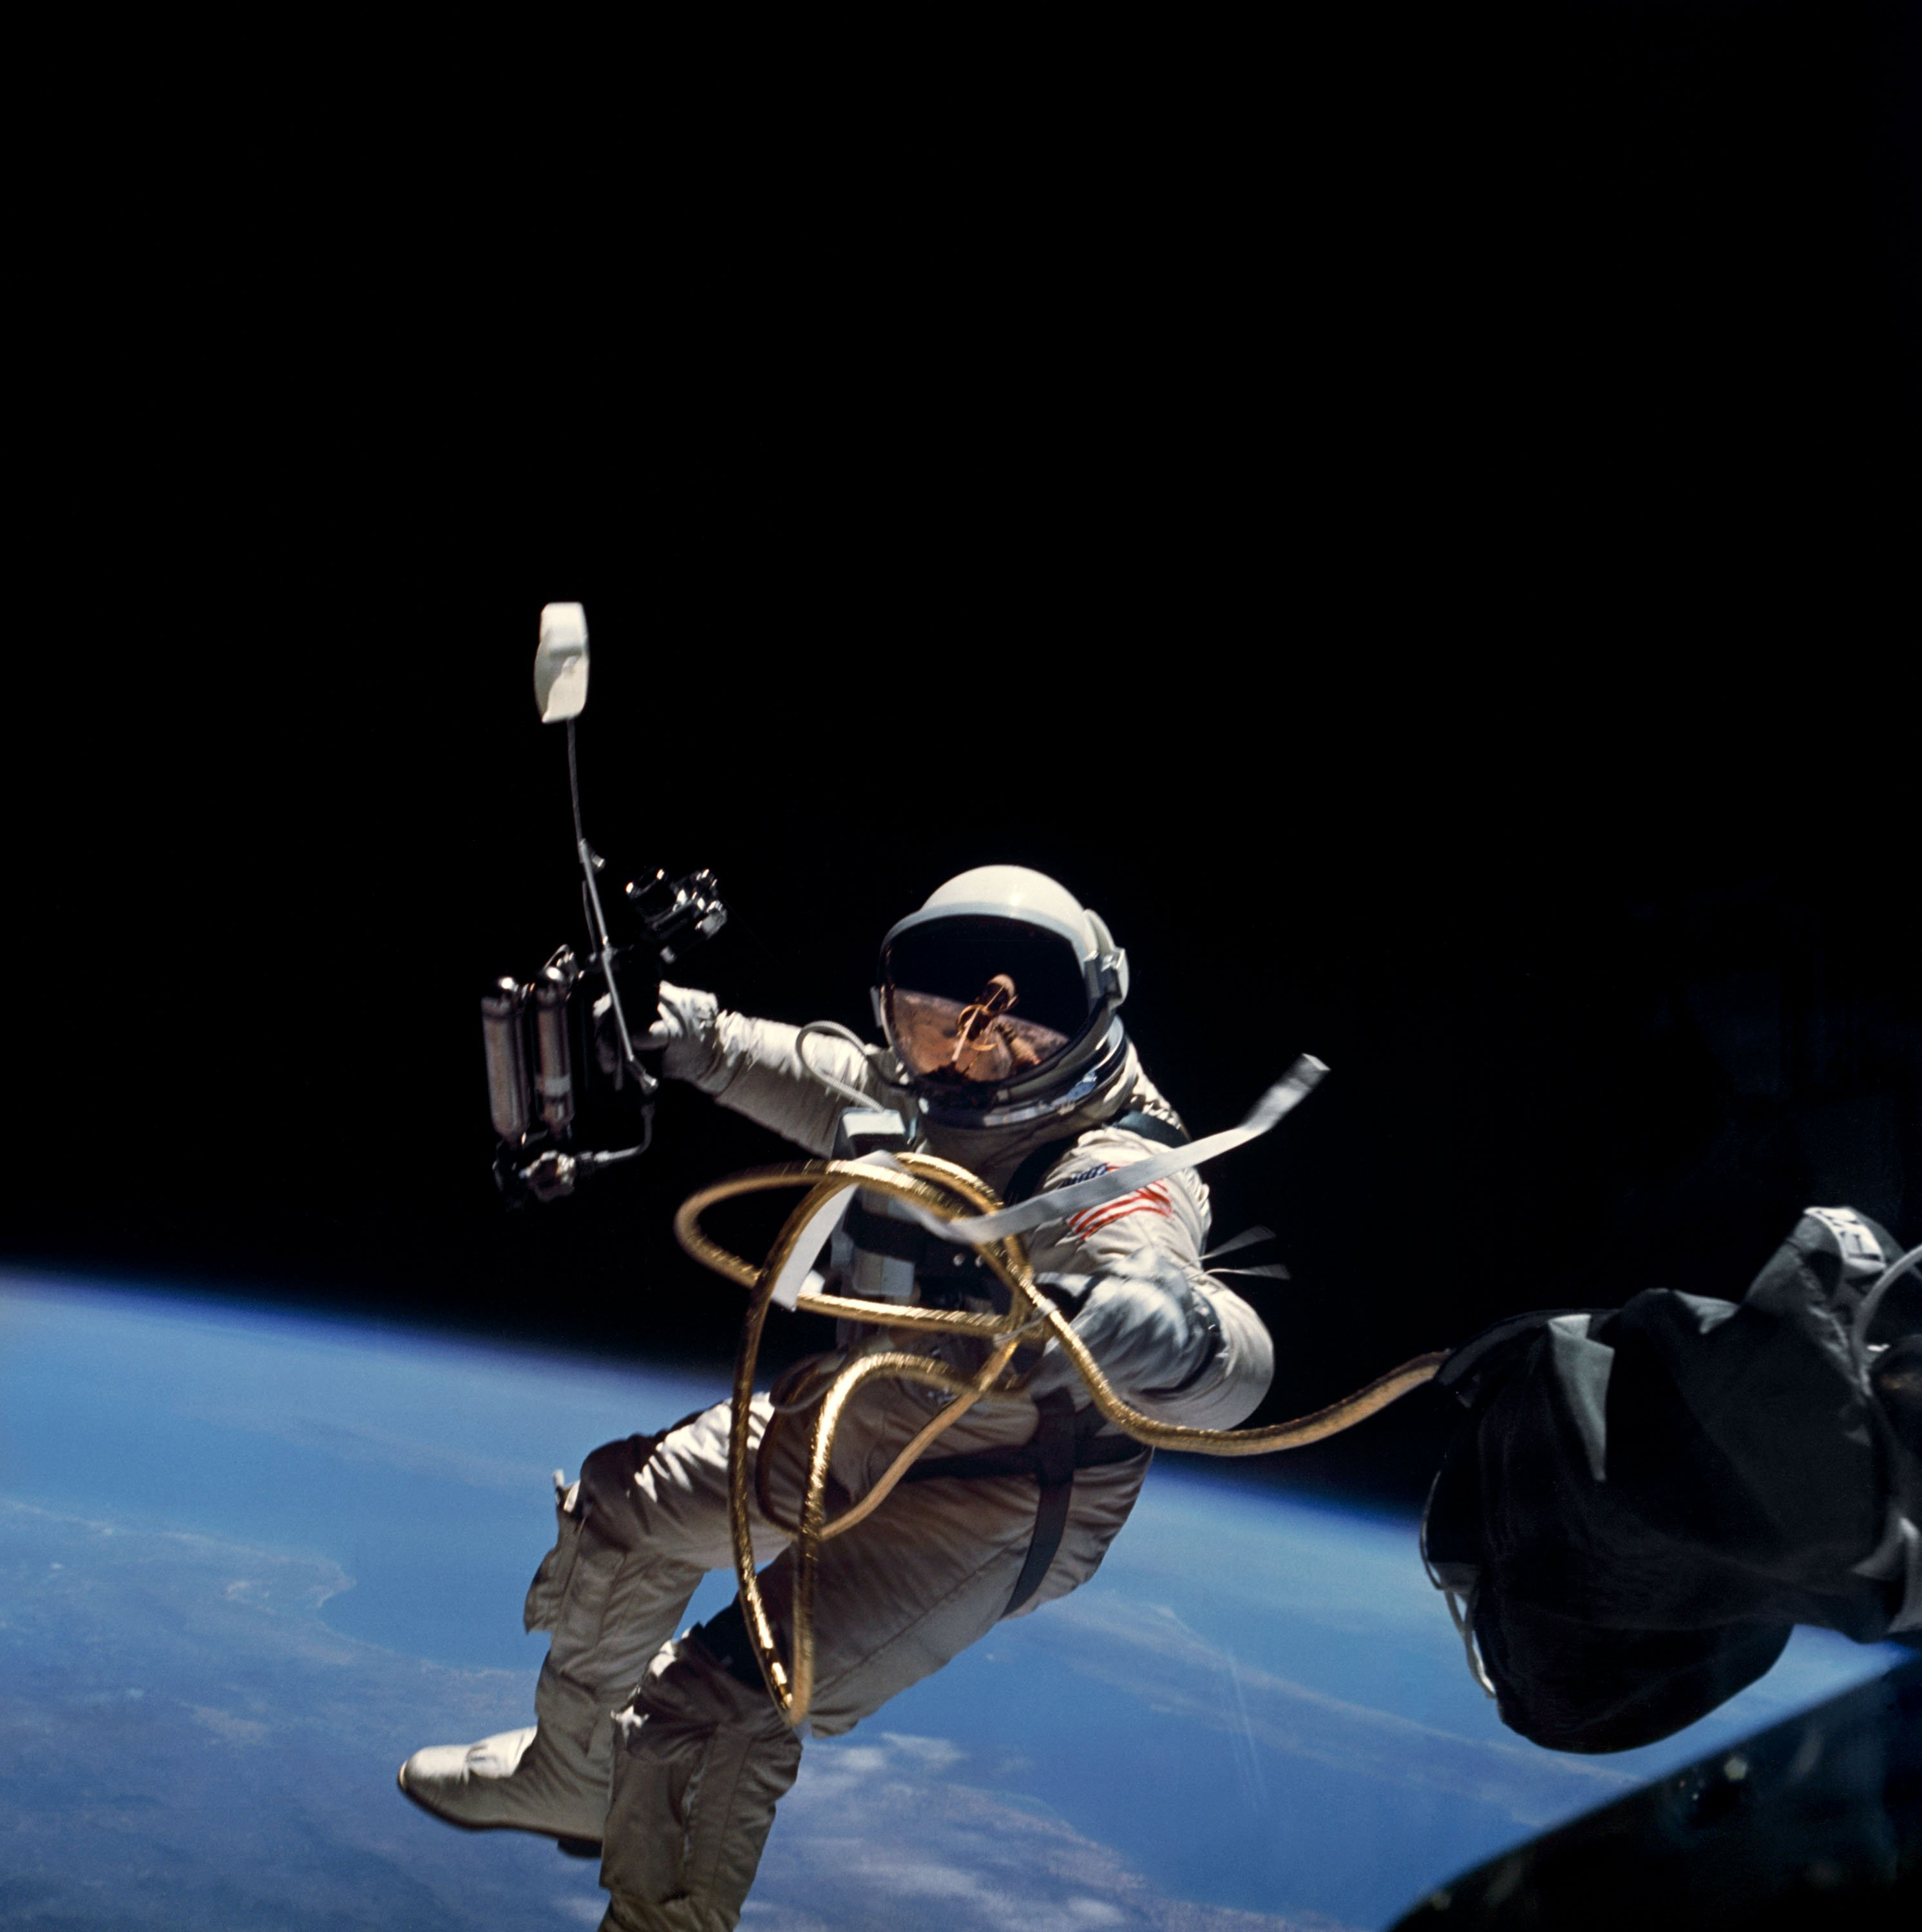 Photo of an astronaut in space